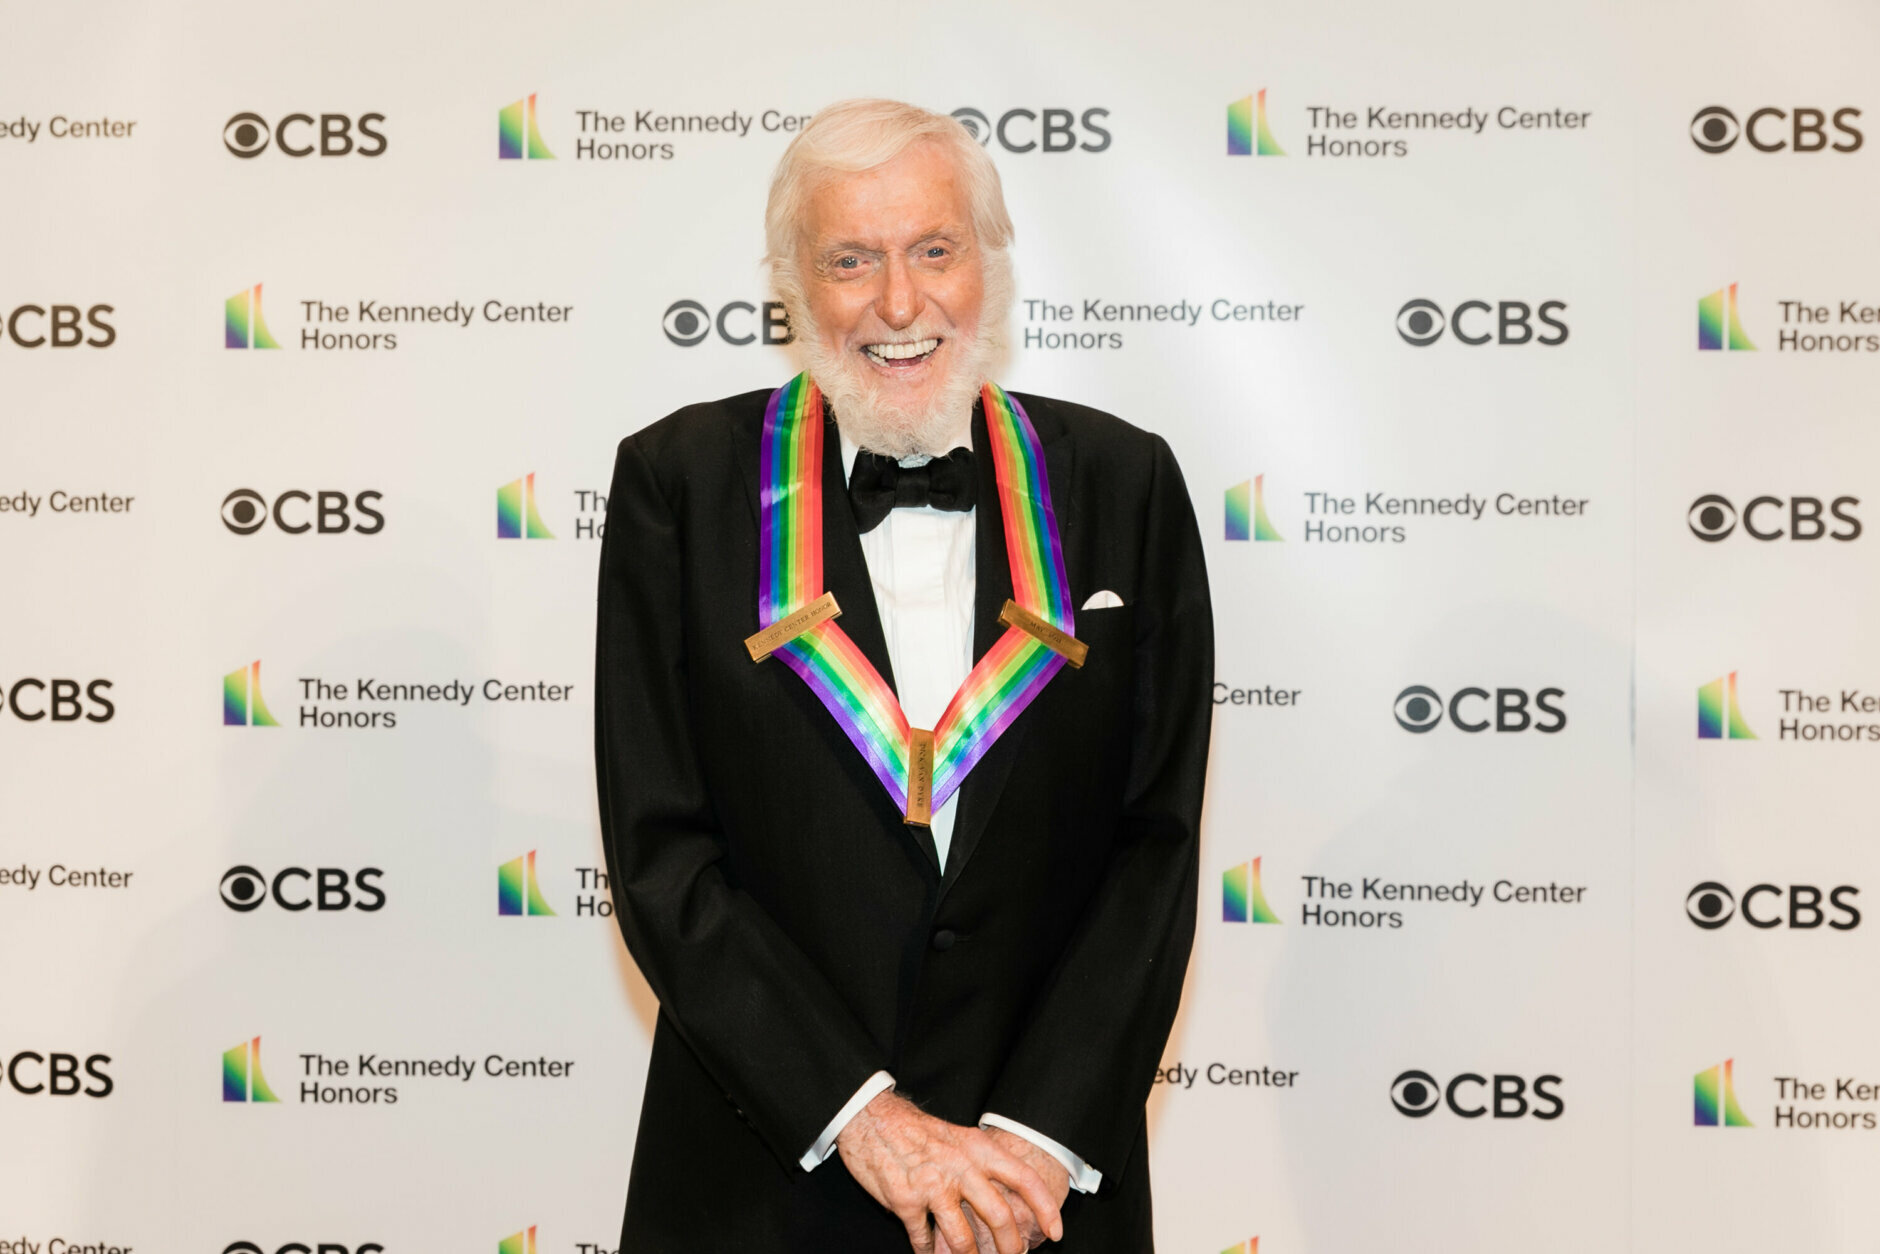 <p>Dick Van Dyke on the red carpet. (Tracey Salazar)</p>